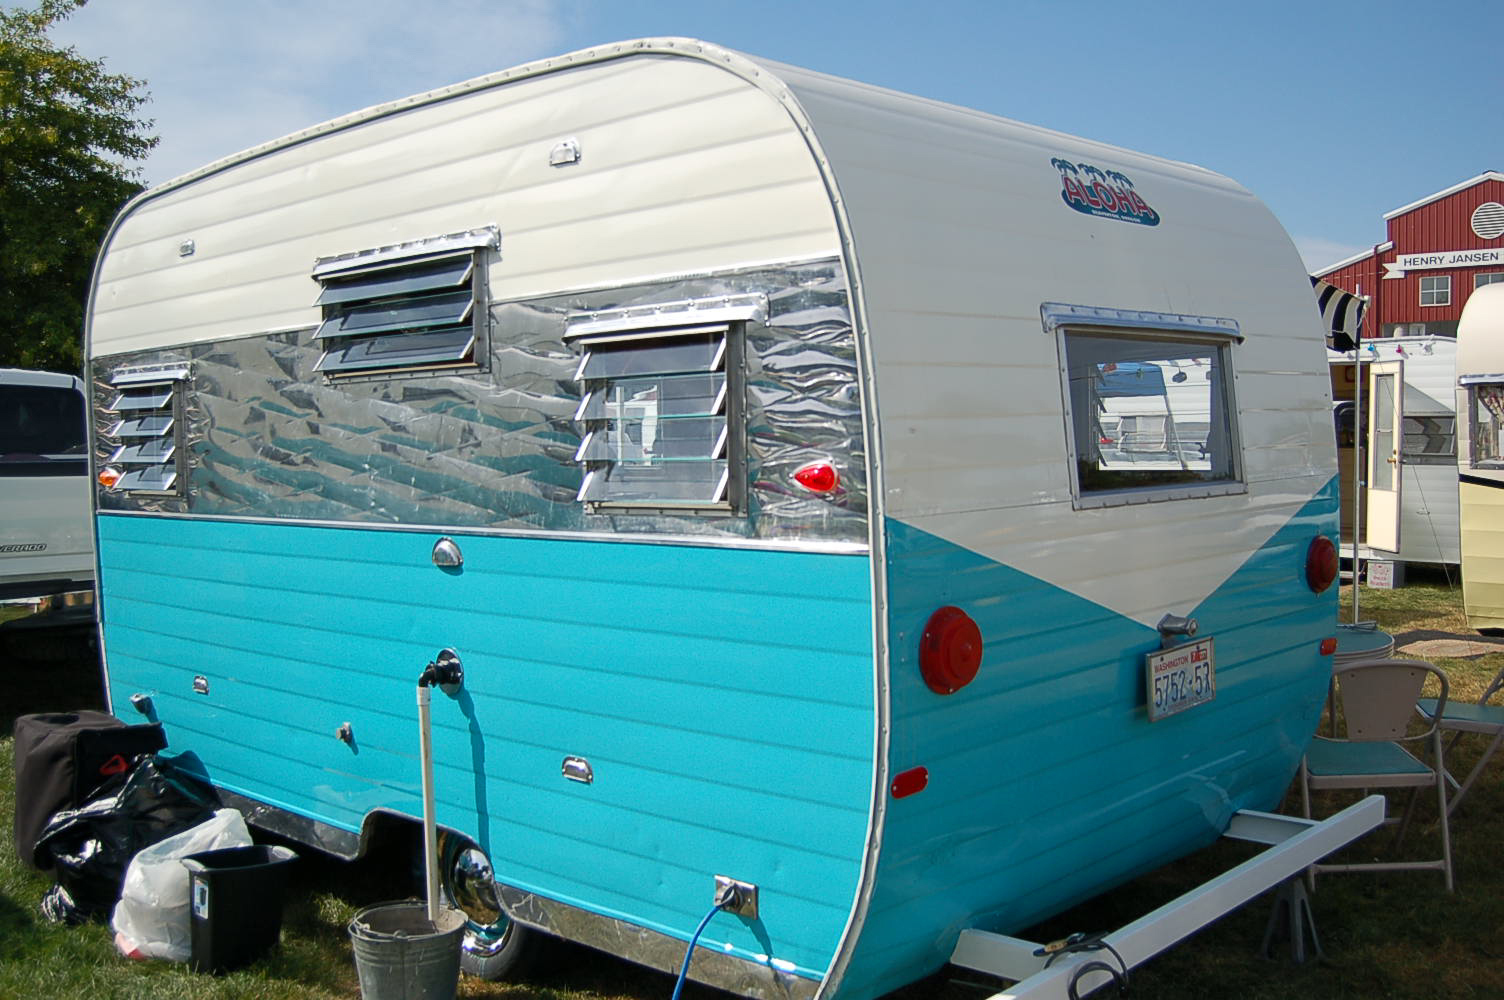 Painting Aluminum Siding On Travel Trailer